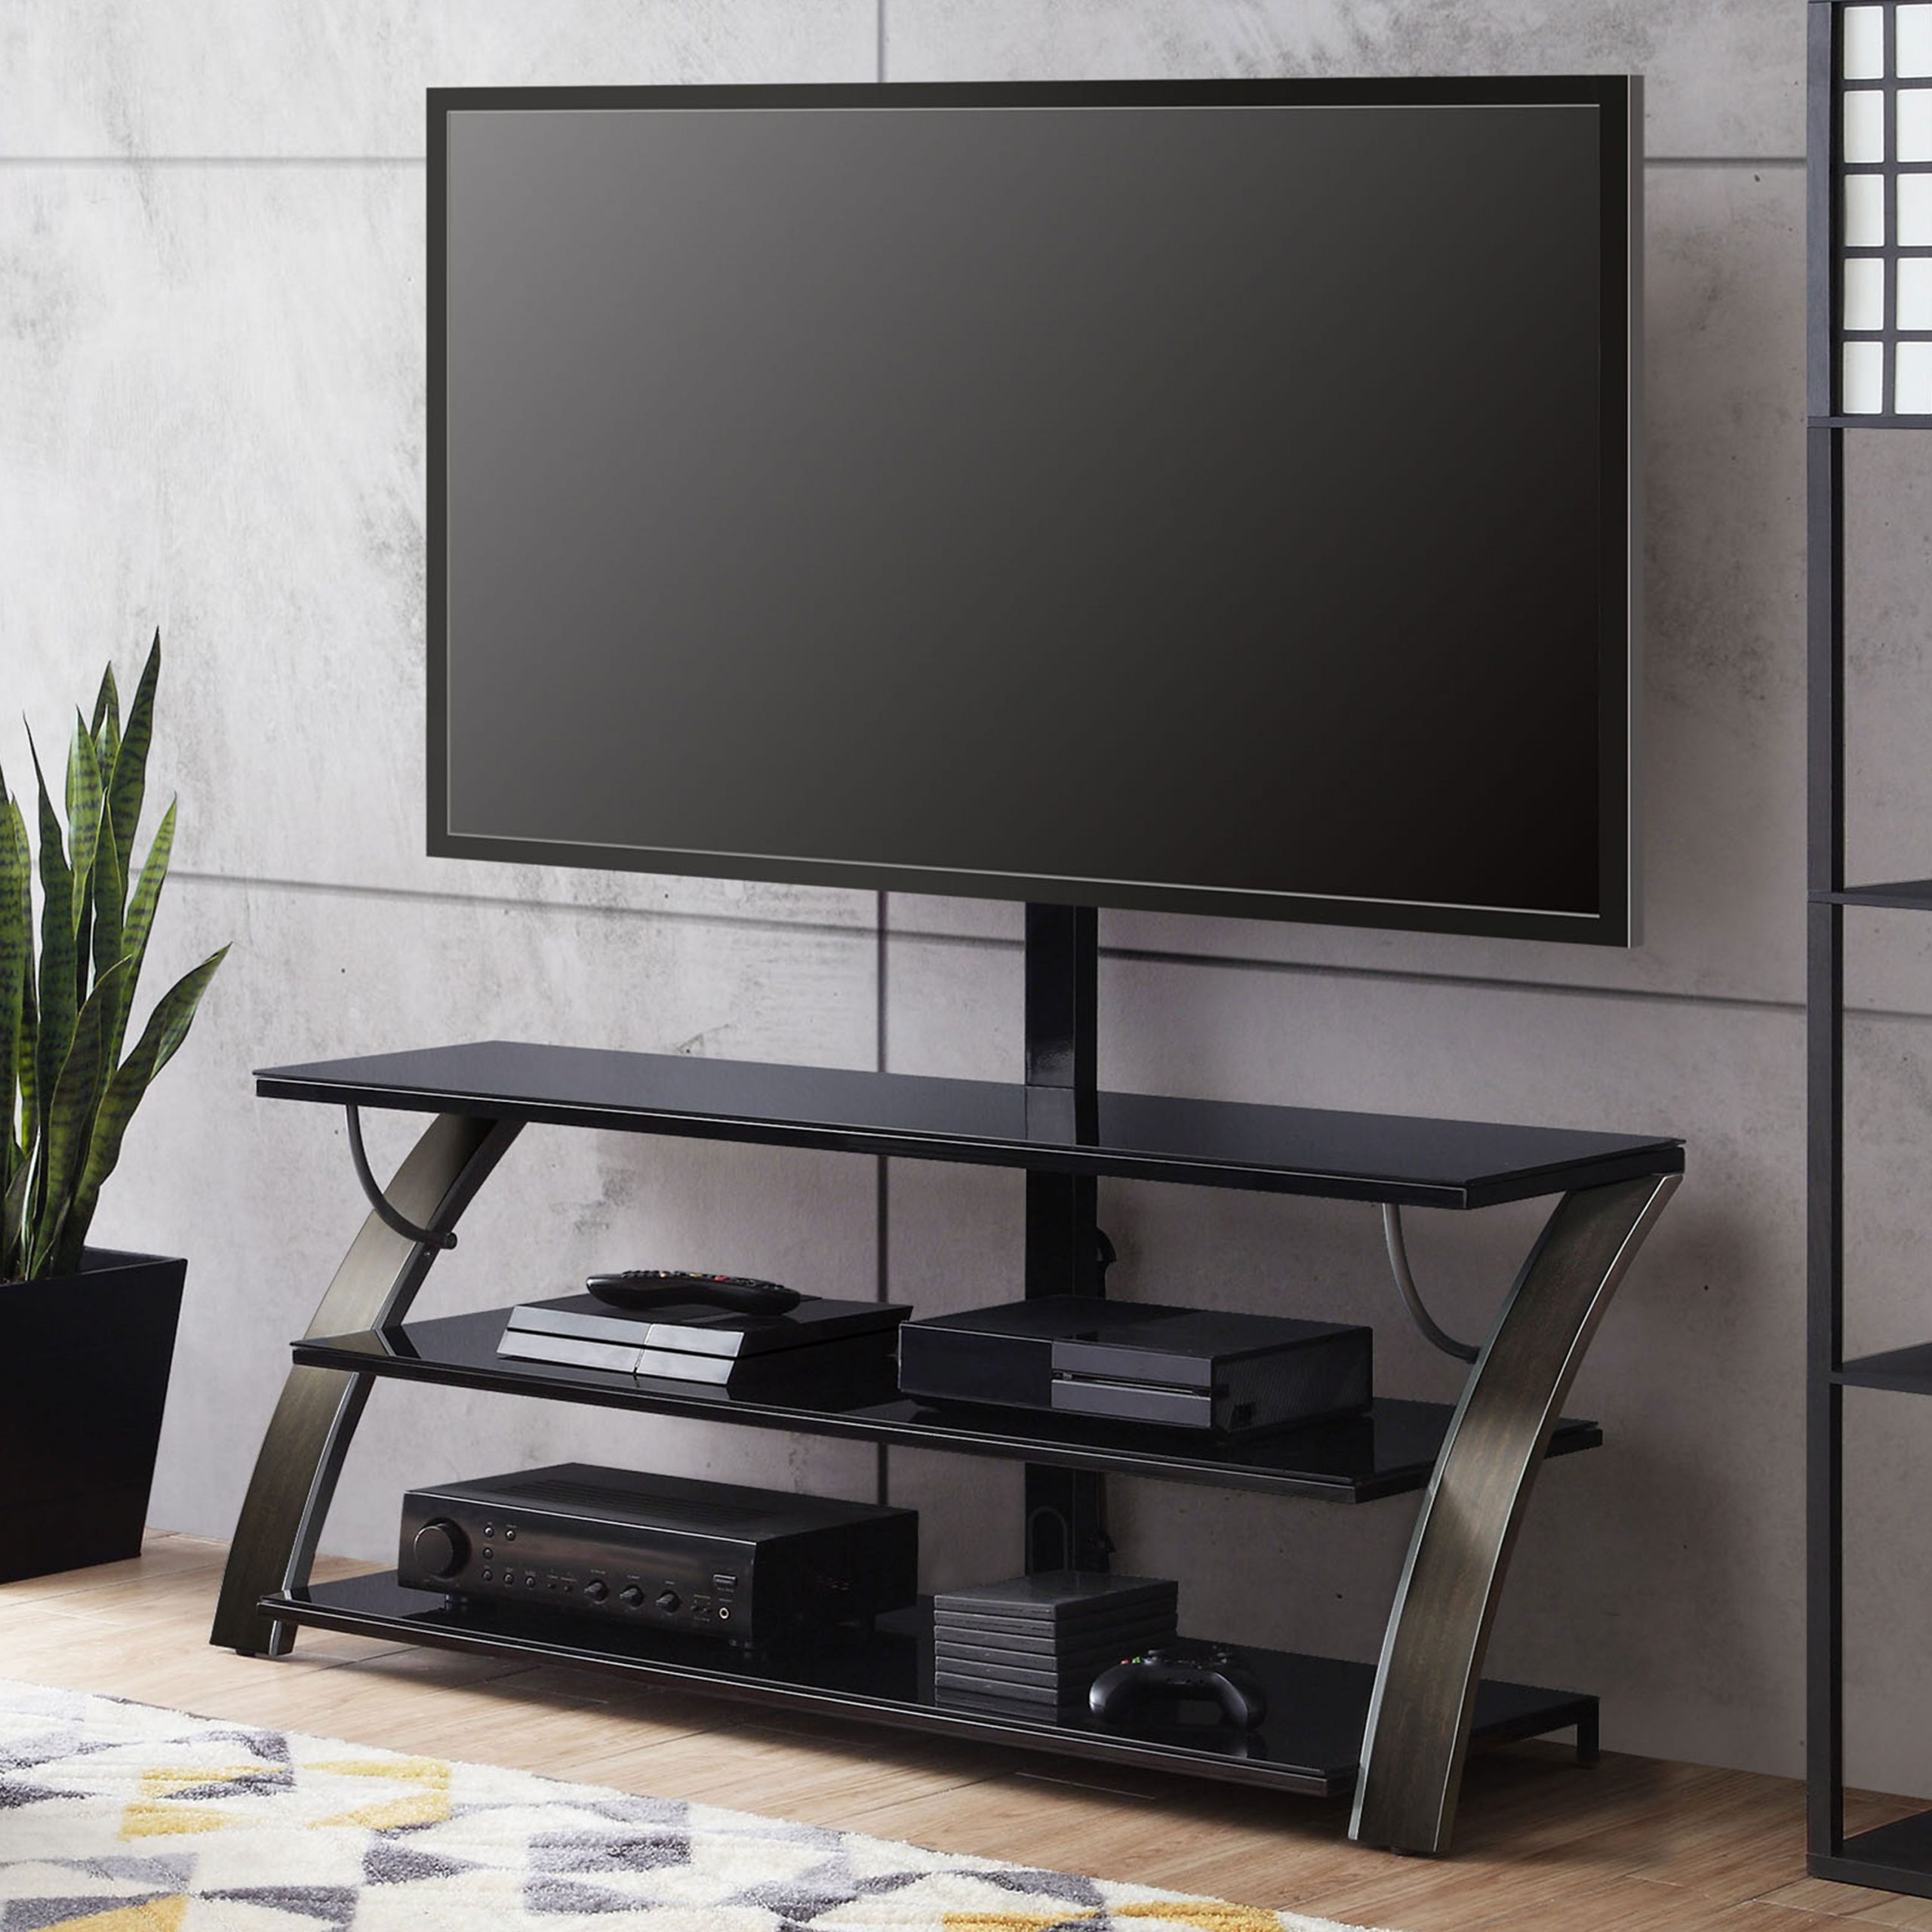 """Whalen Payton 3 In 1 Flat Panel Tv Stand For Tvs Up To 65 For Stamford Tv Stands For Tvs Up To 65"""" (View 13 of 20)"""